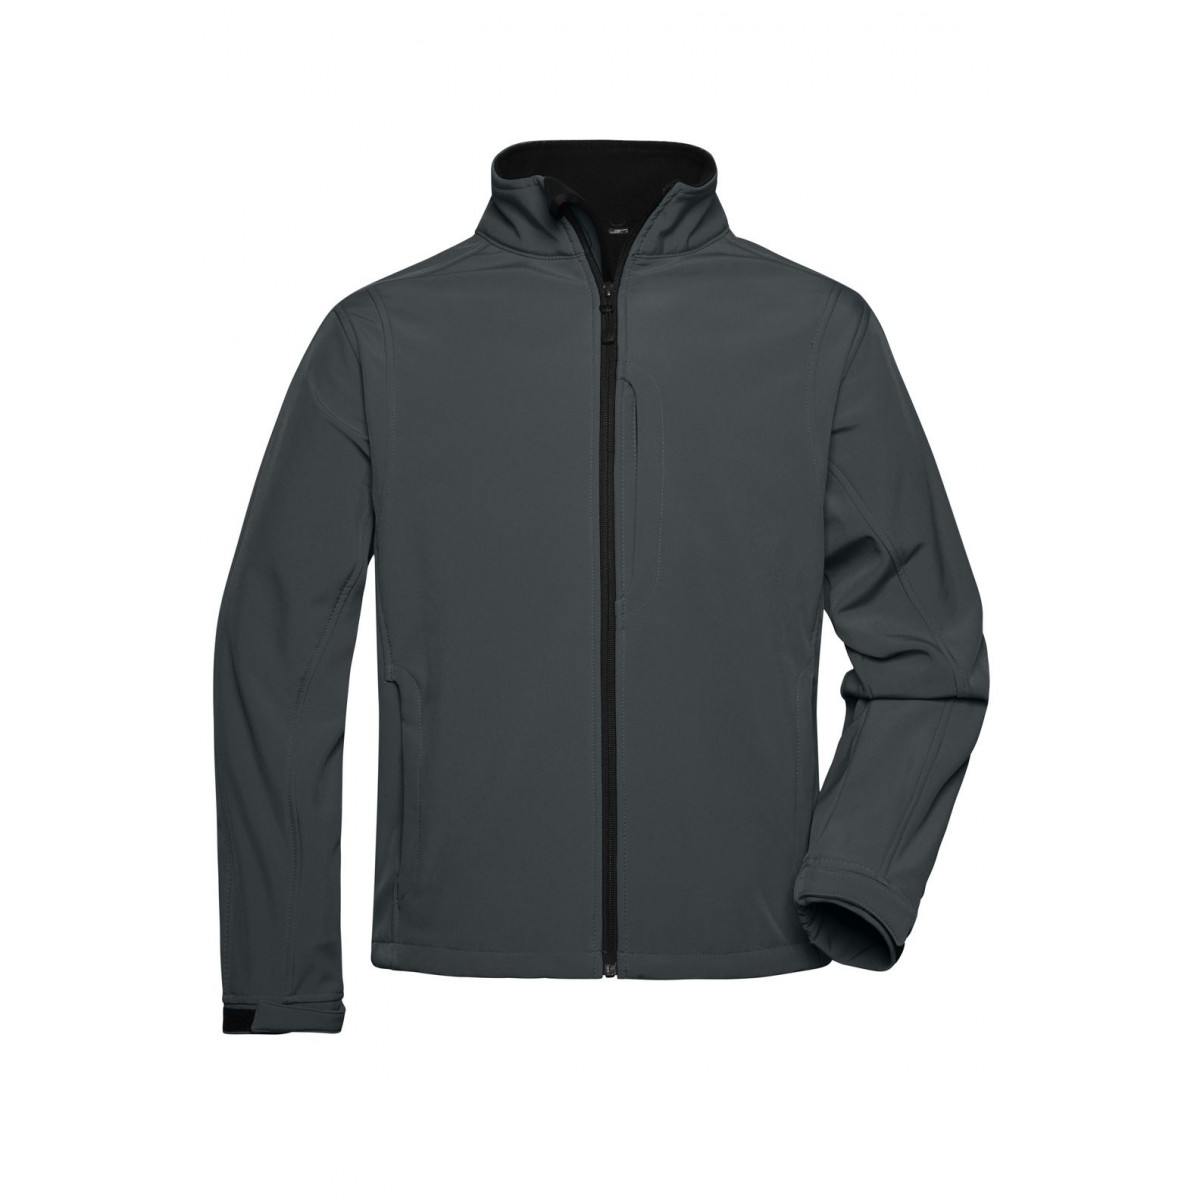 Куртка мужская JN135 Mens Softshell Jacket - Карбон